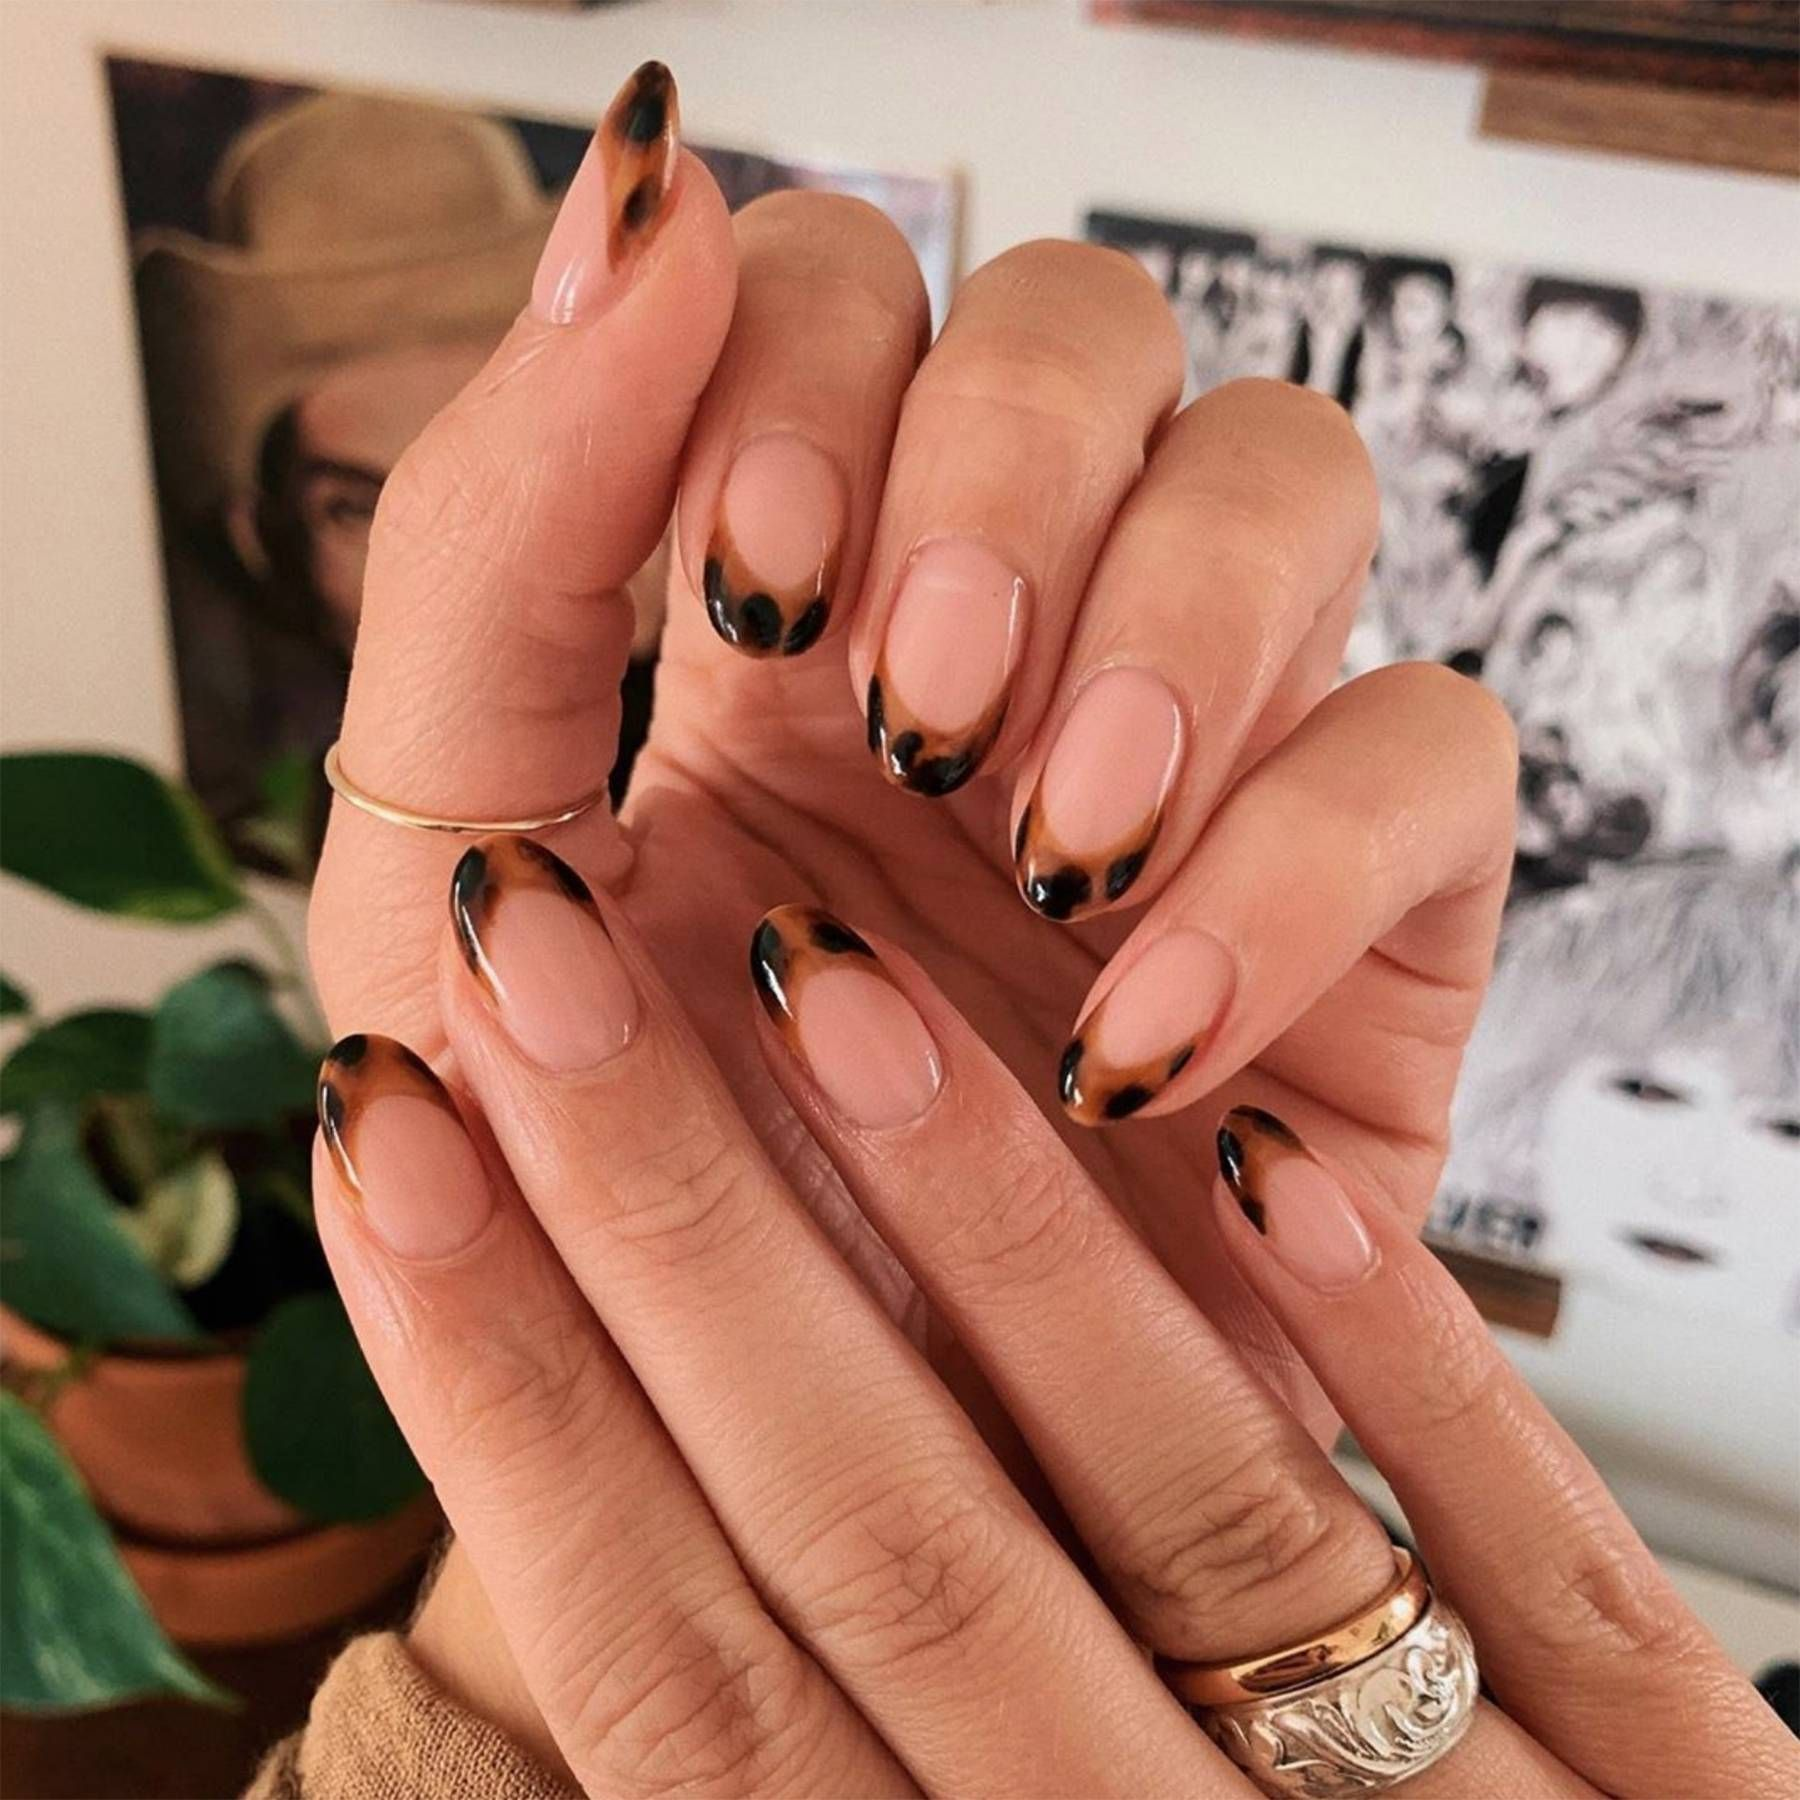 Shell nails are the prettiest act of escapism  Minimalist nails